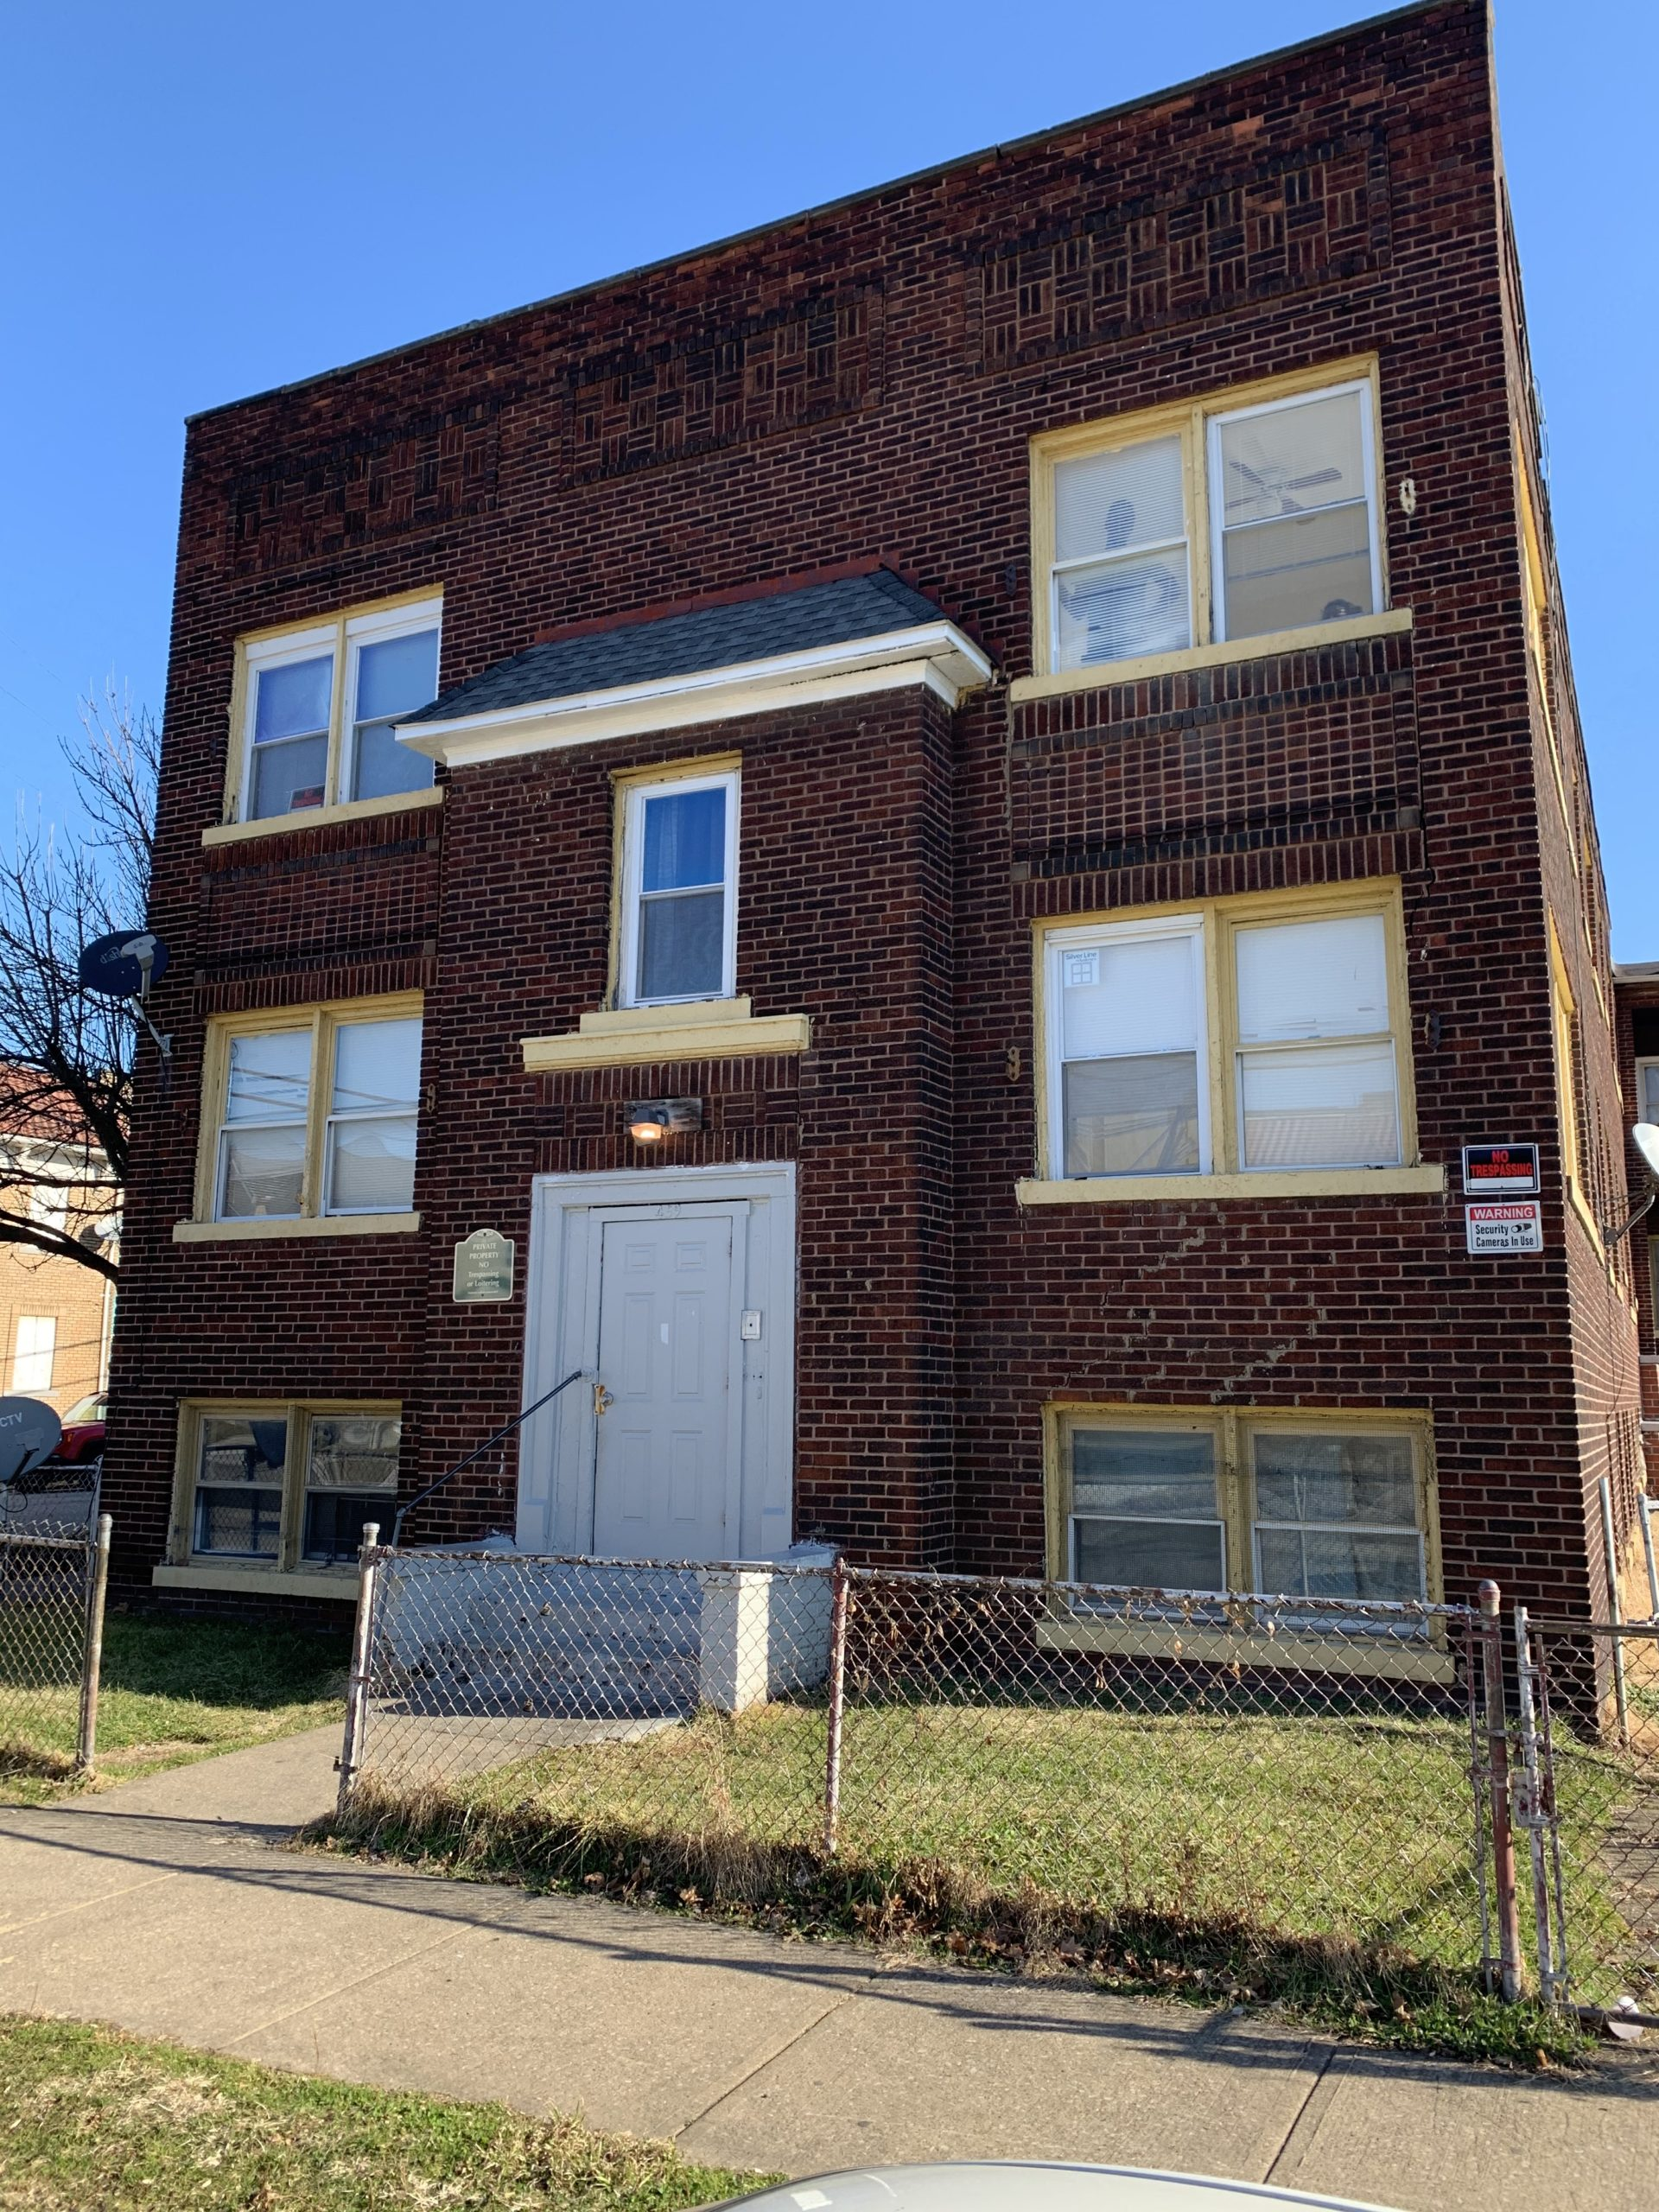 459 East 117th Street, OH 44108 – Unit3